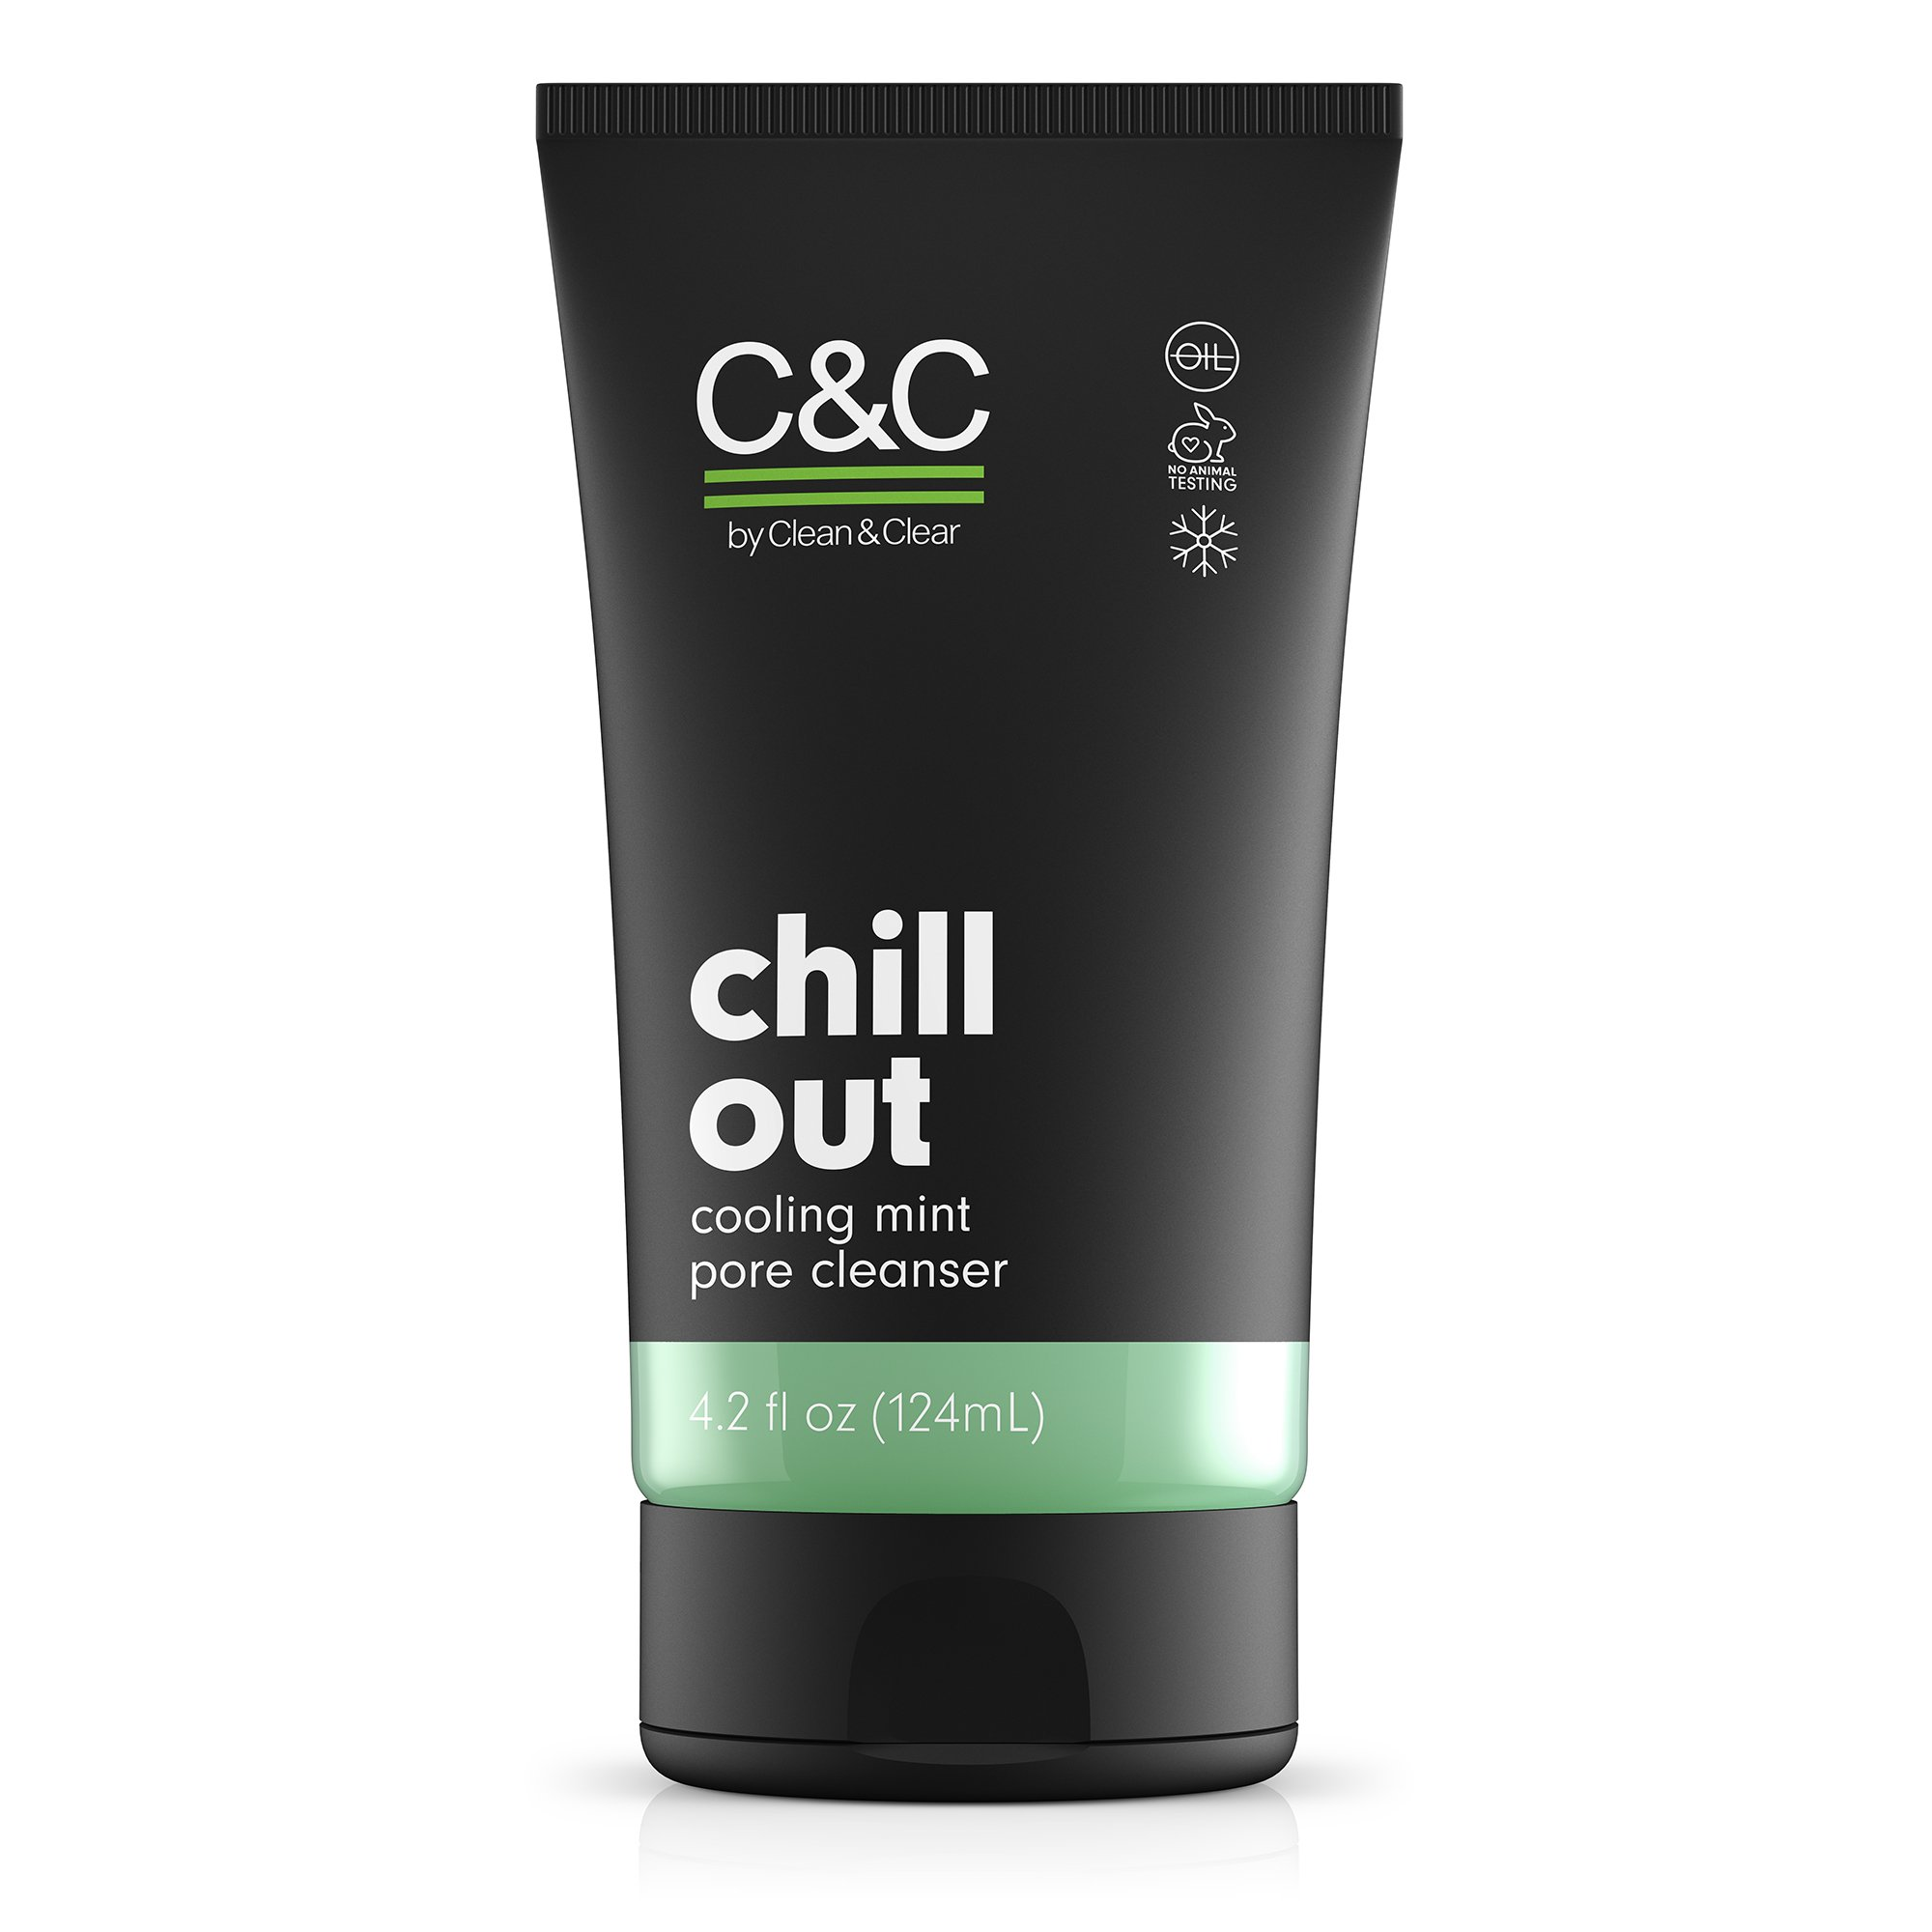 C&C by Clean & Clear Chill Out Cooling Mint Pore Facial Cleanser, Oil Free, Minty Fresh, Removes Dirt and Oil, Face Wash, 4.2 fl oz (Pack of 1)